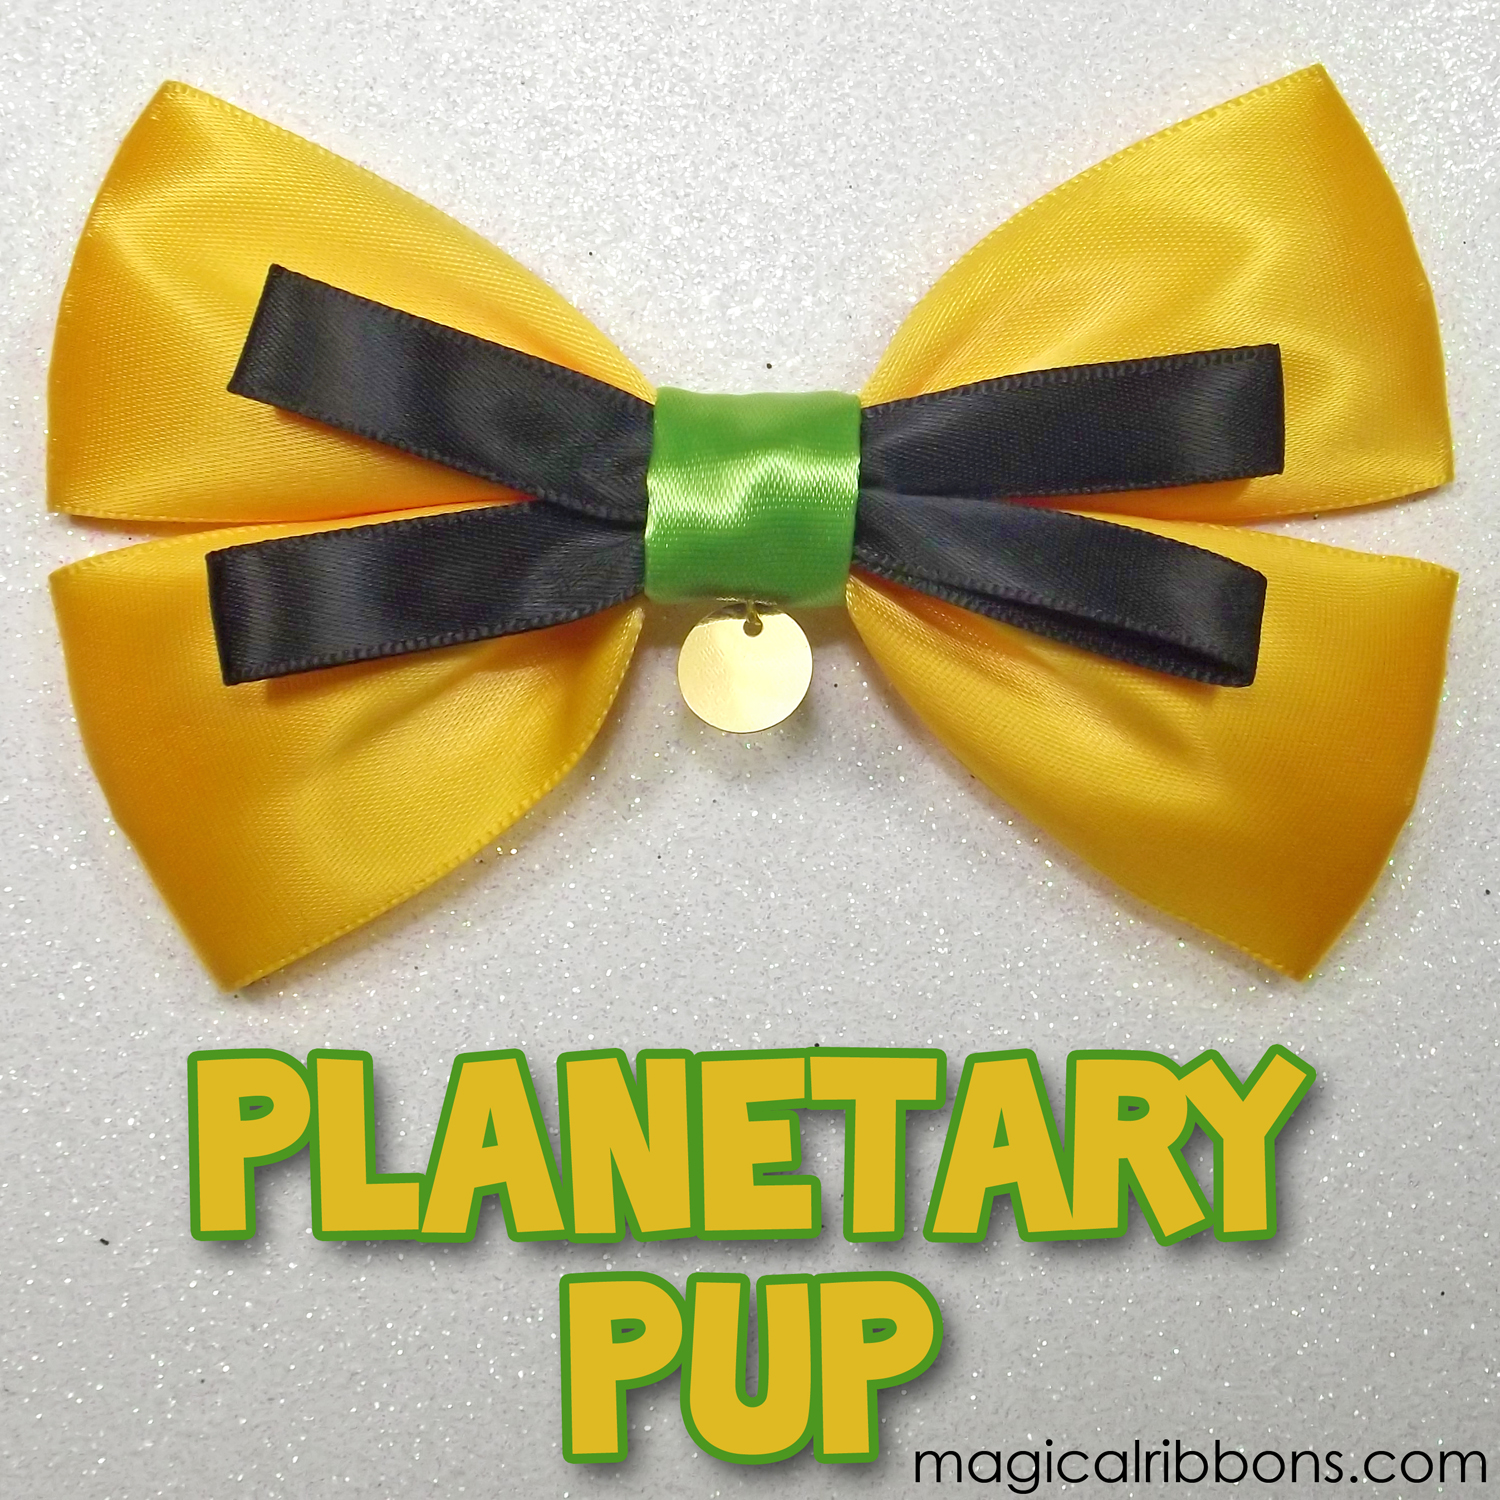 Planetary Pup